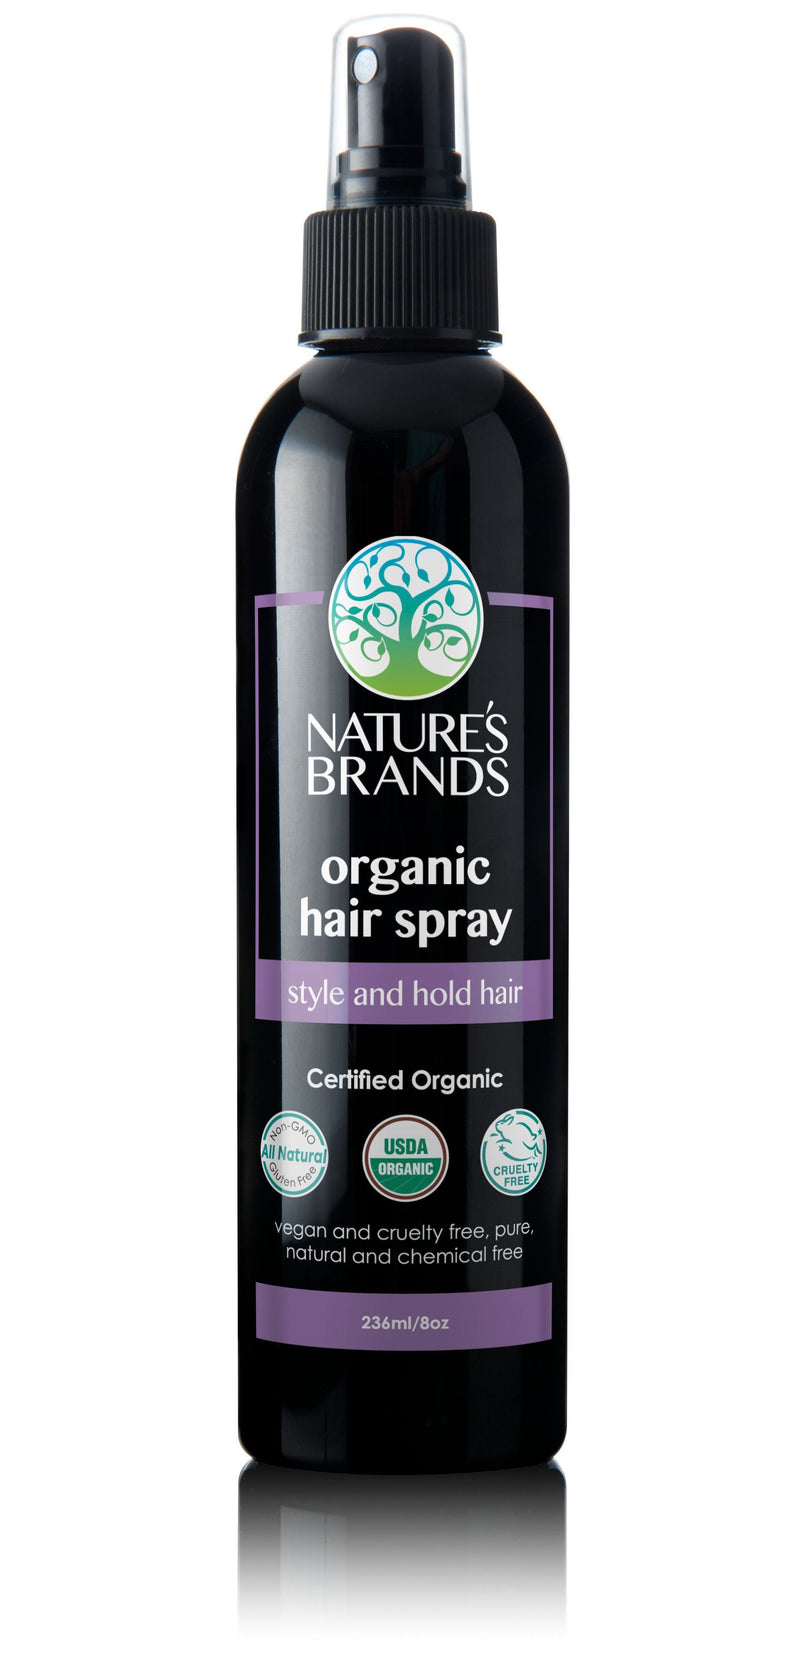 Herbal Choice Mari Organic Hair Spray - Herbal Choice Mari Organic Hair Spray - 8floz